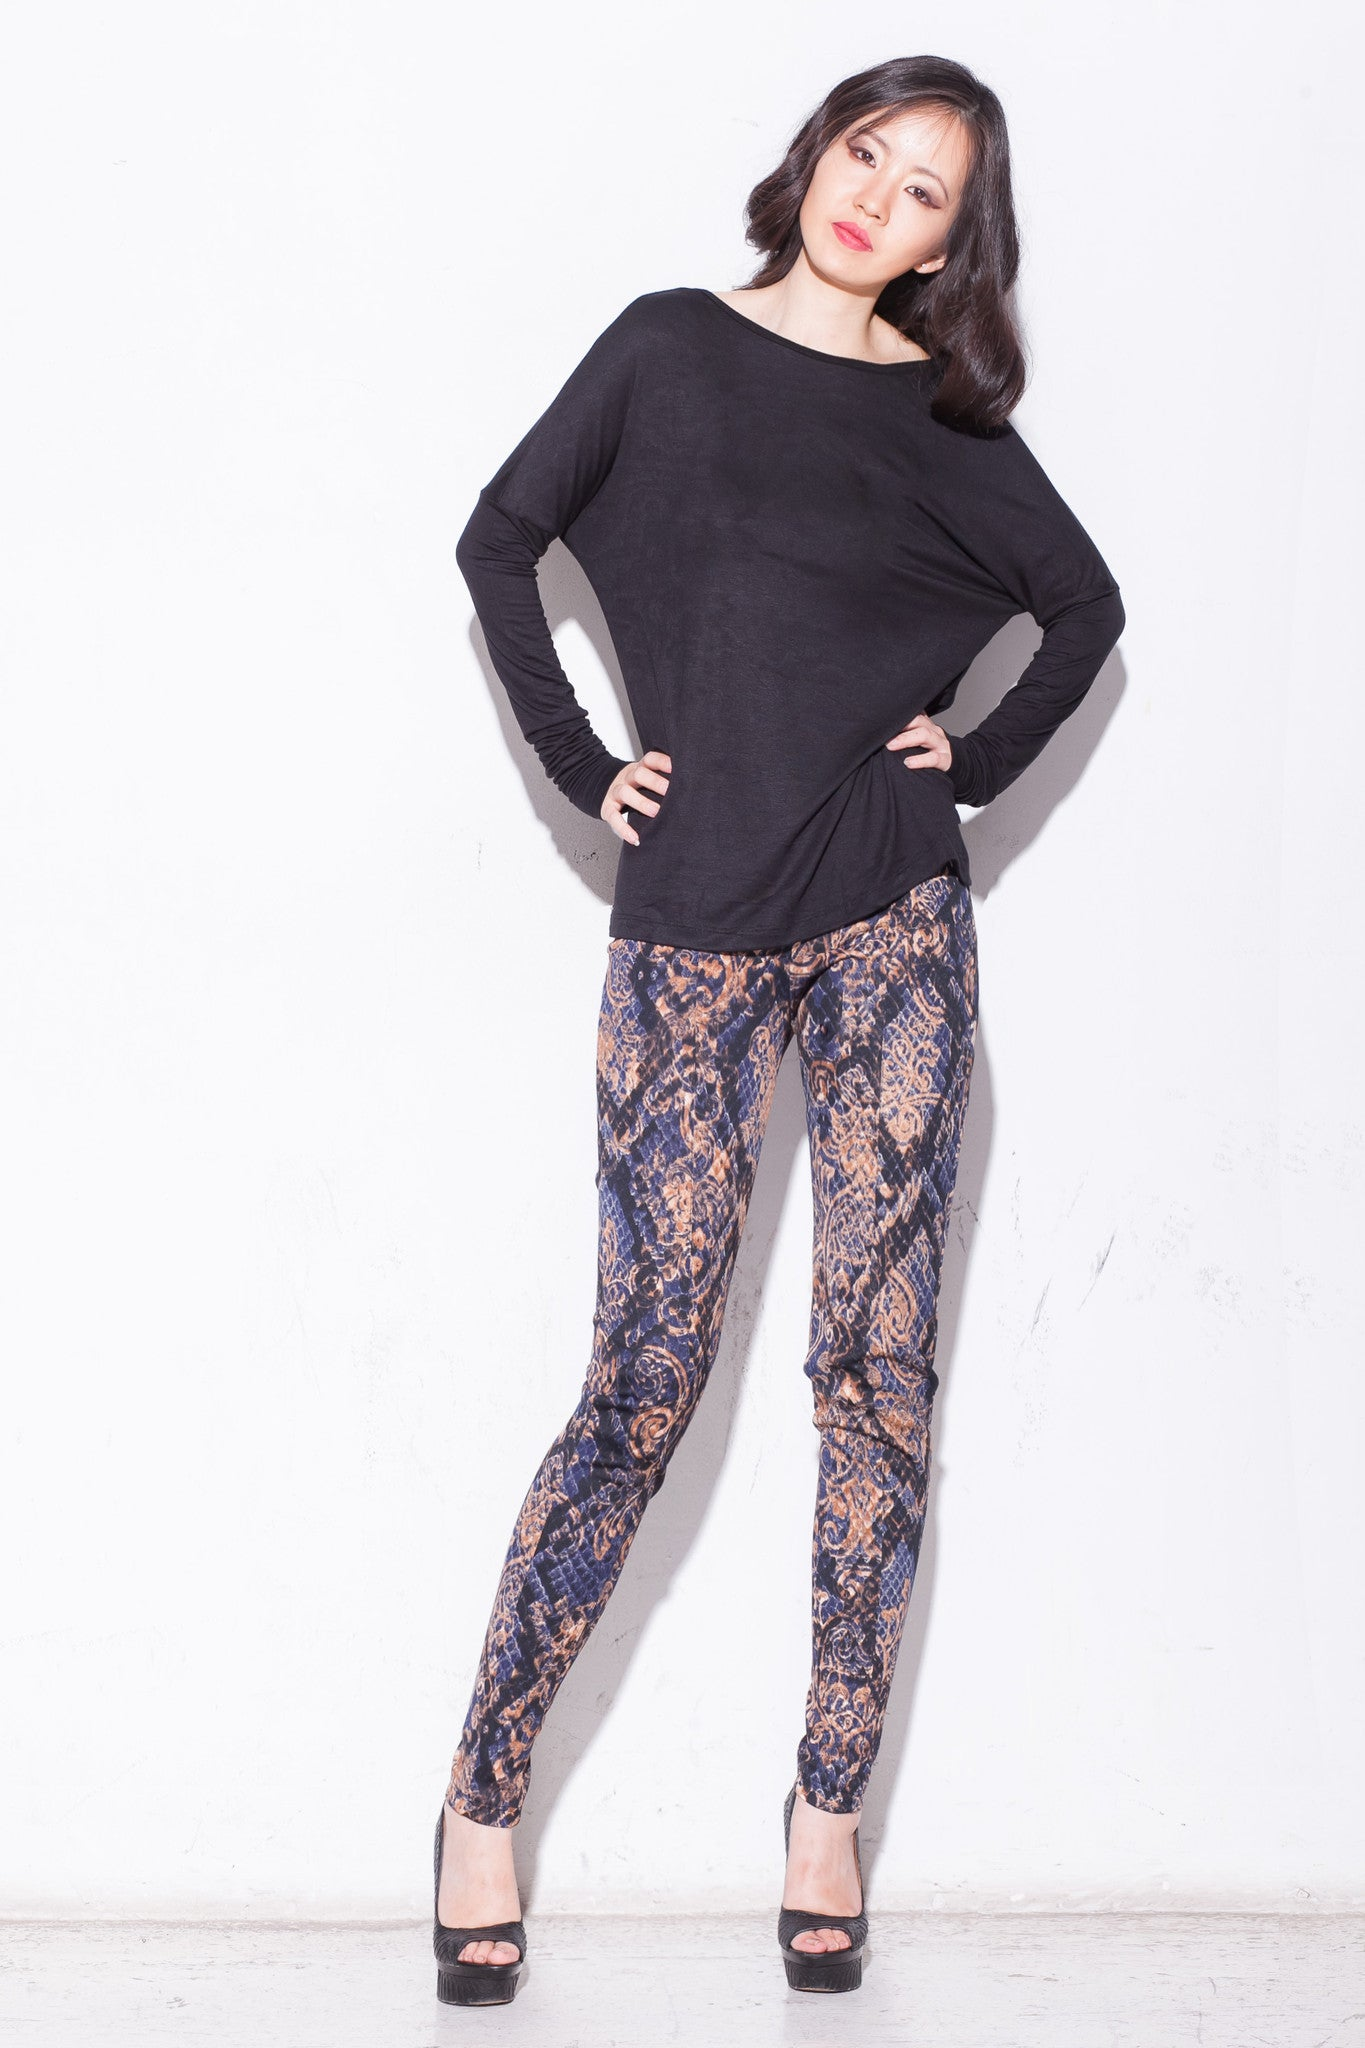 Alexa Golden Serpent Fitted Scuba Pants - ANA MARIA KIM  - 1